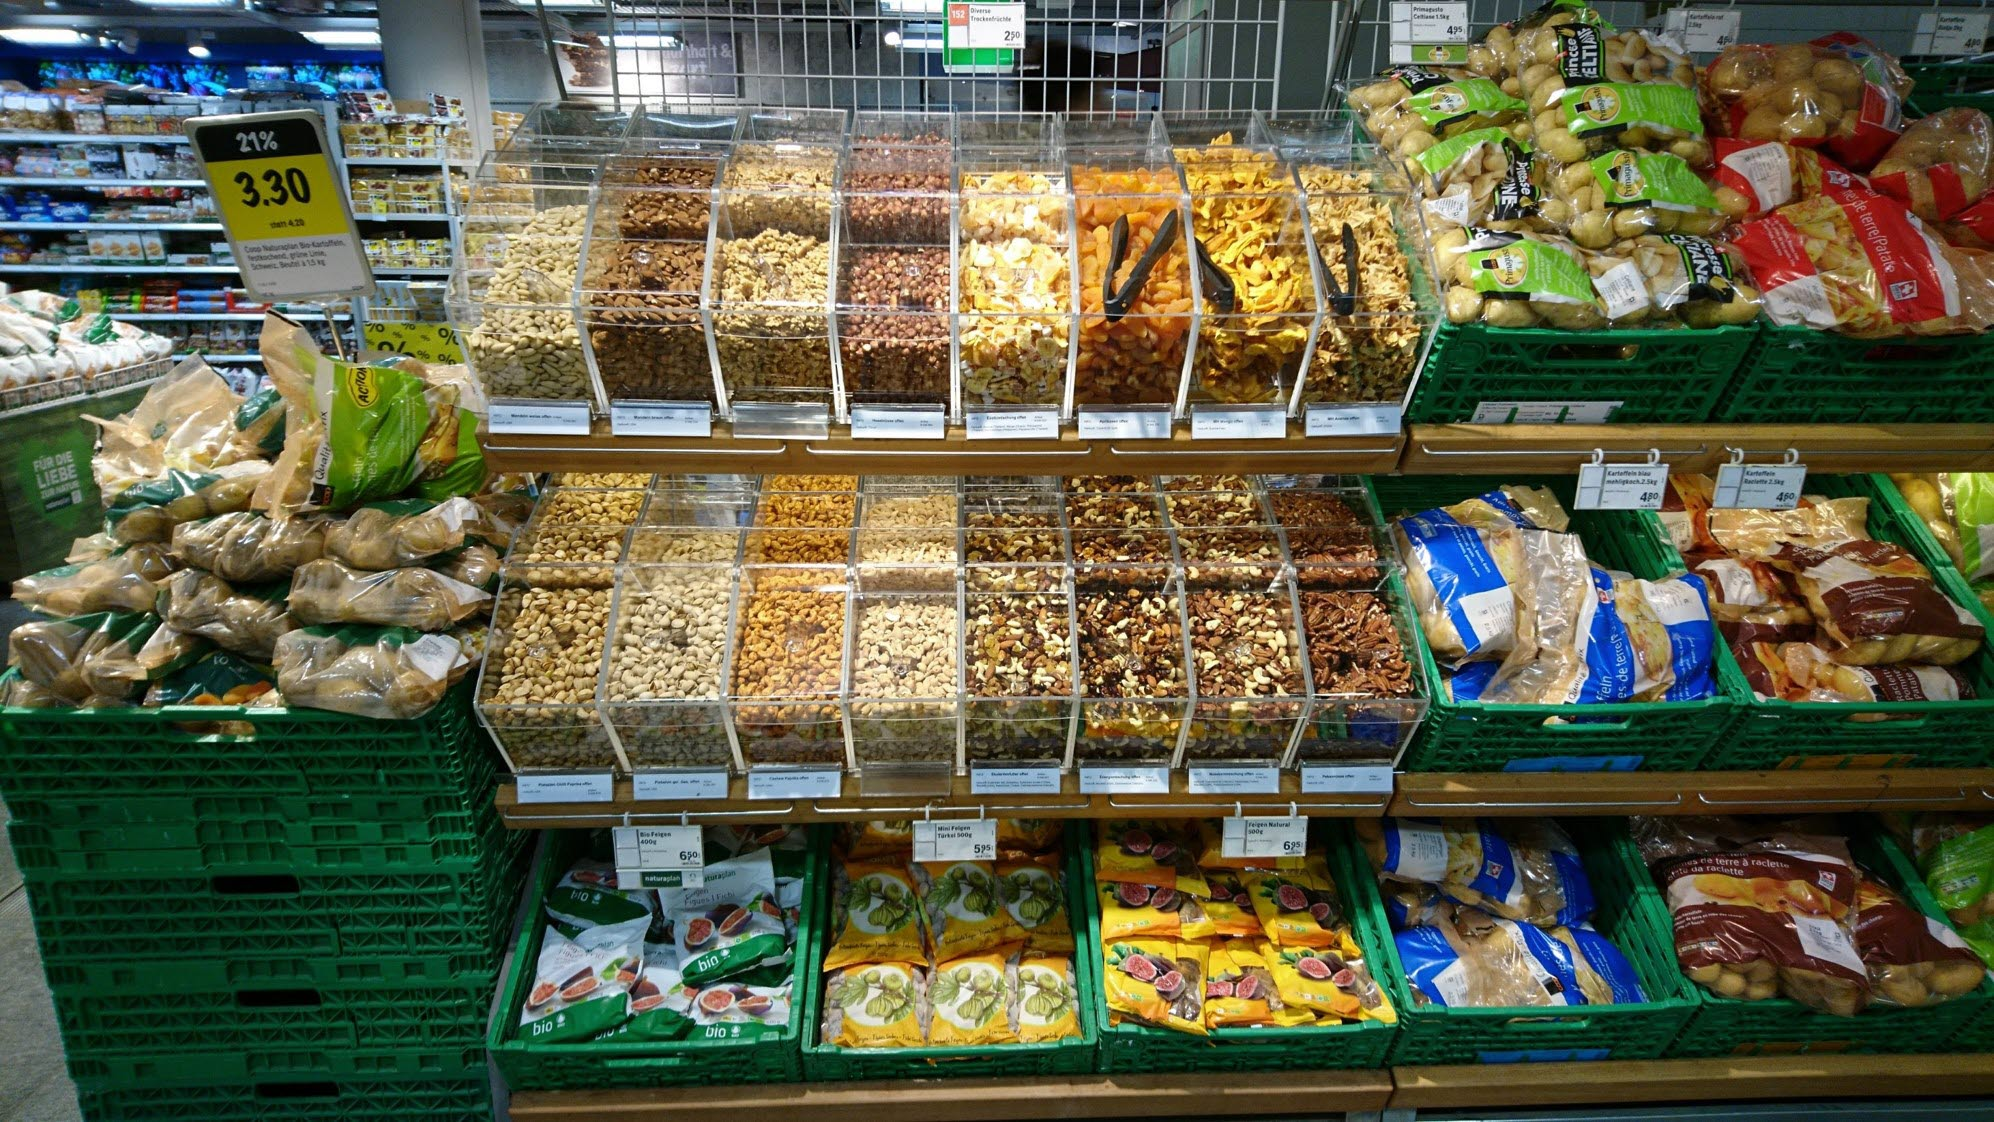 Coop_Switzerland_Bulk-Bins_HL-Display_Fresh_4.jpg